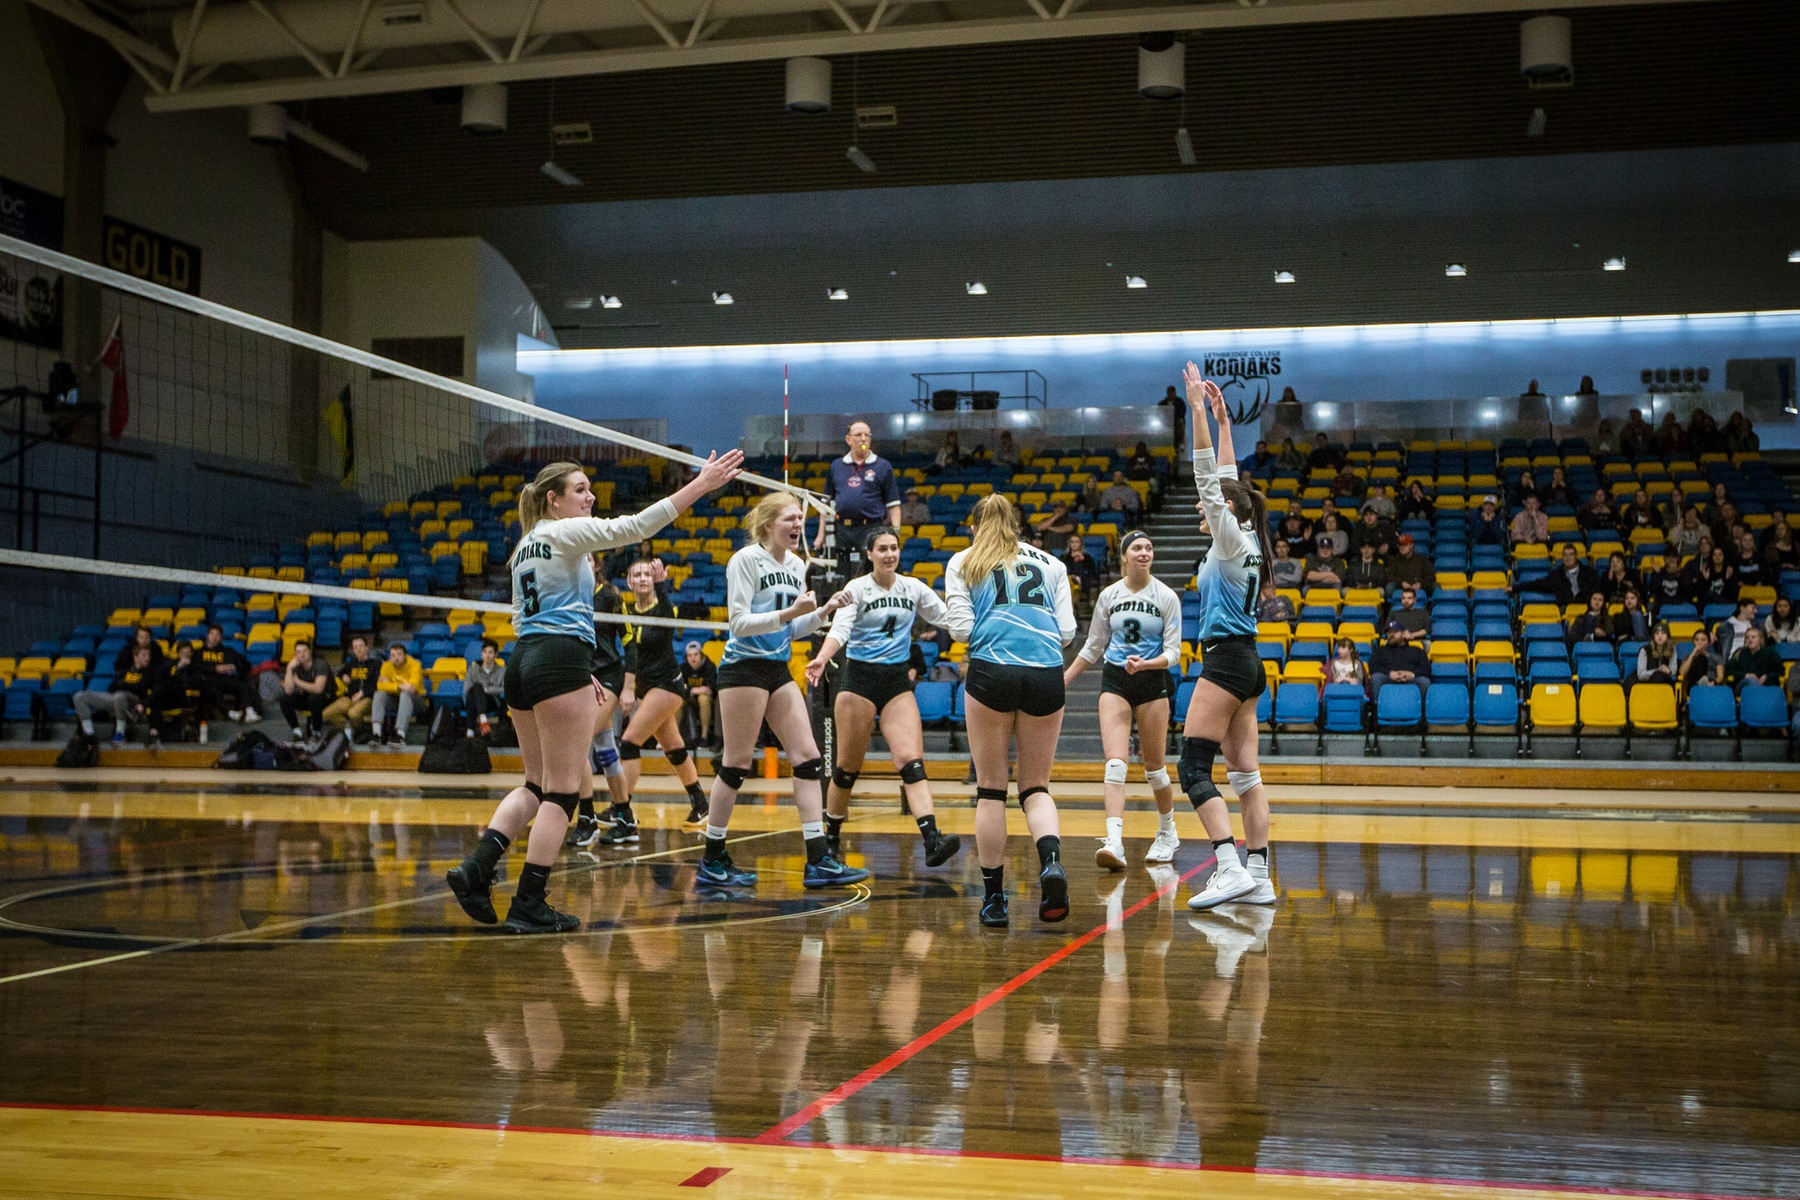 WVB | Kodiaks Fall the the Queens Once Again